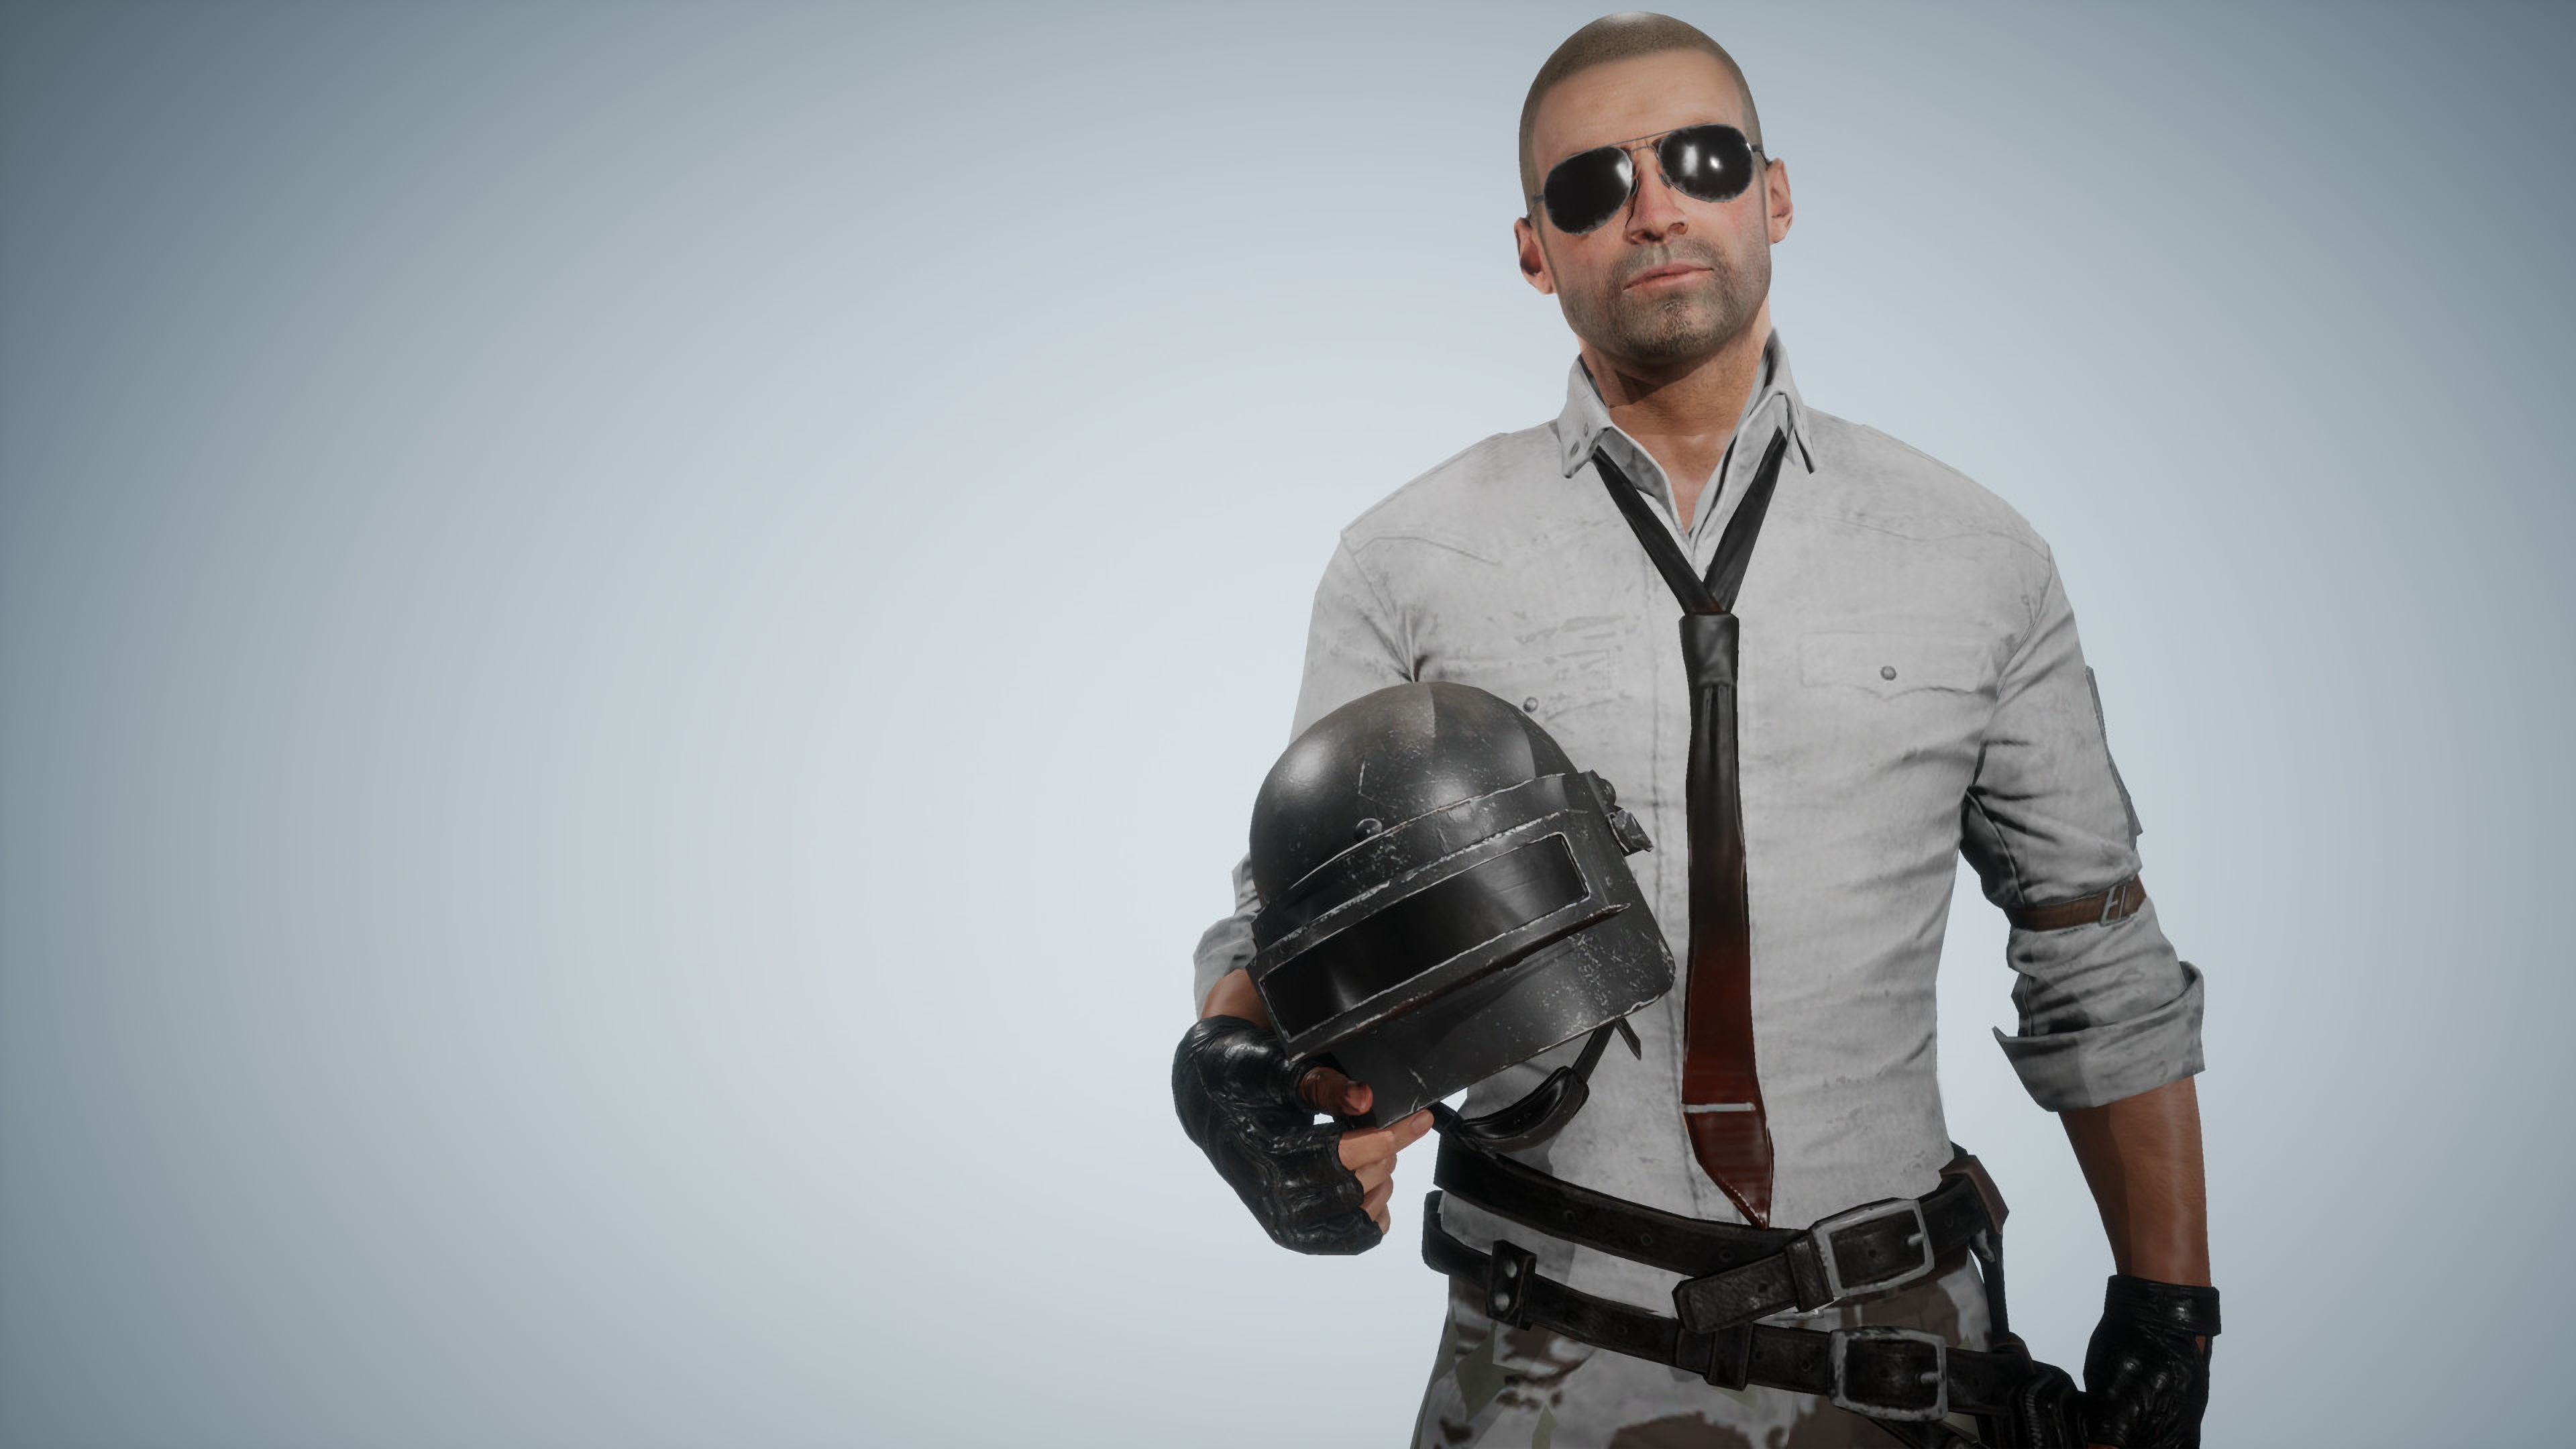 Pubg Wallpapers Hd Mobile: Pubg Helmet Guy Without Helmet, HD Games, 4k Wallpapers